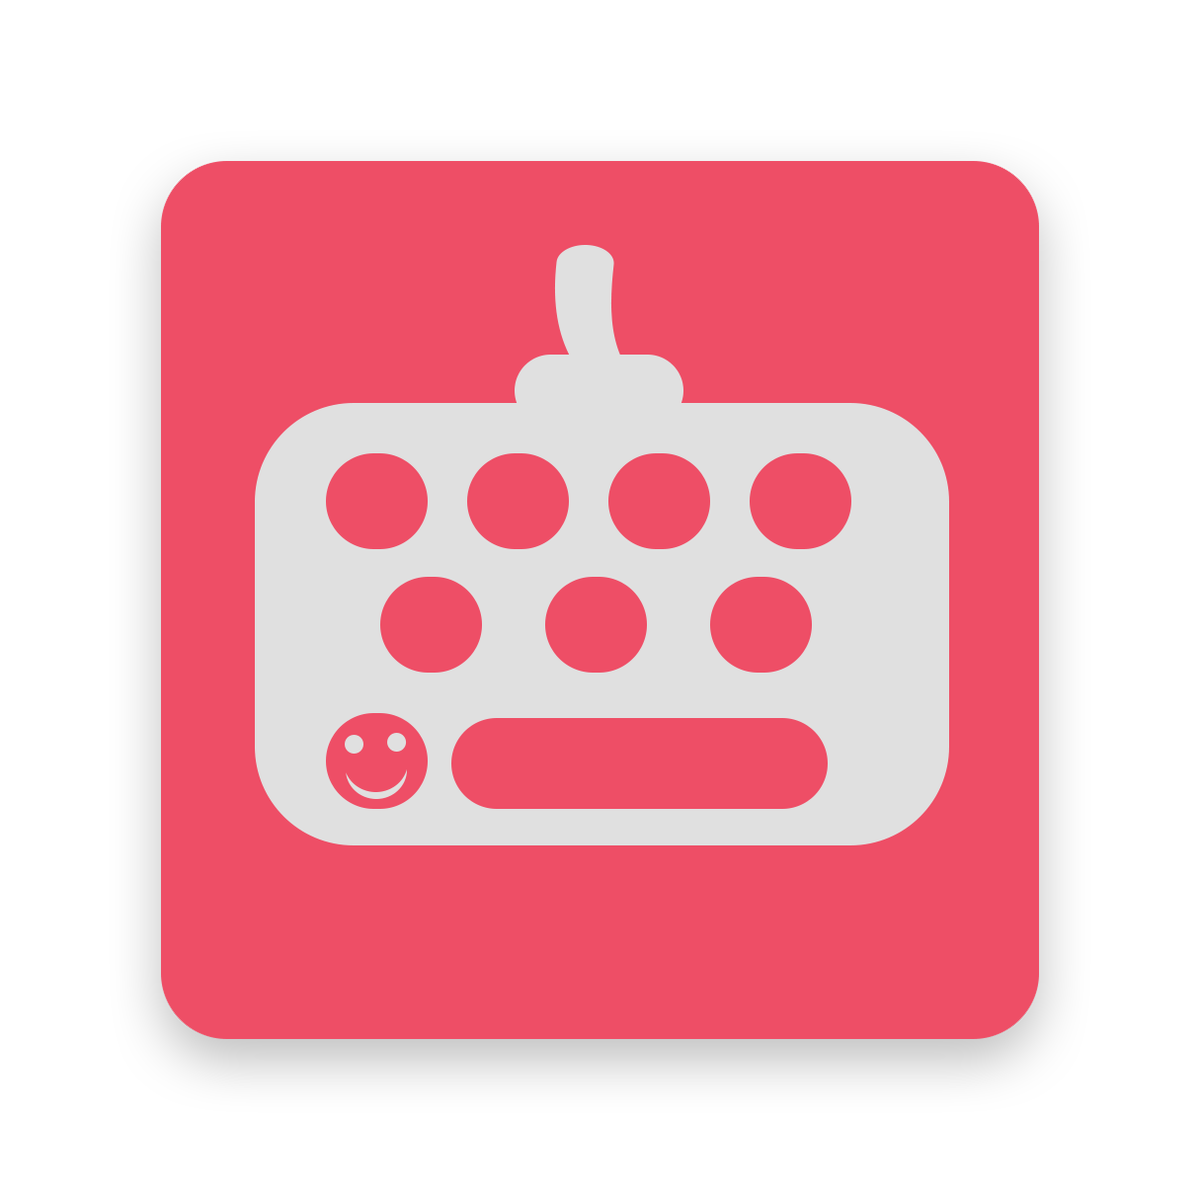 another #android & #ios #keyboard app has entered the game, I can only share the #app icon for now.. More soon! https://t.co/egCmHhrY2t